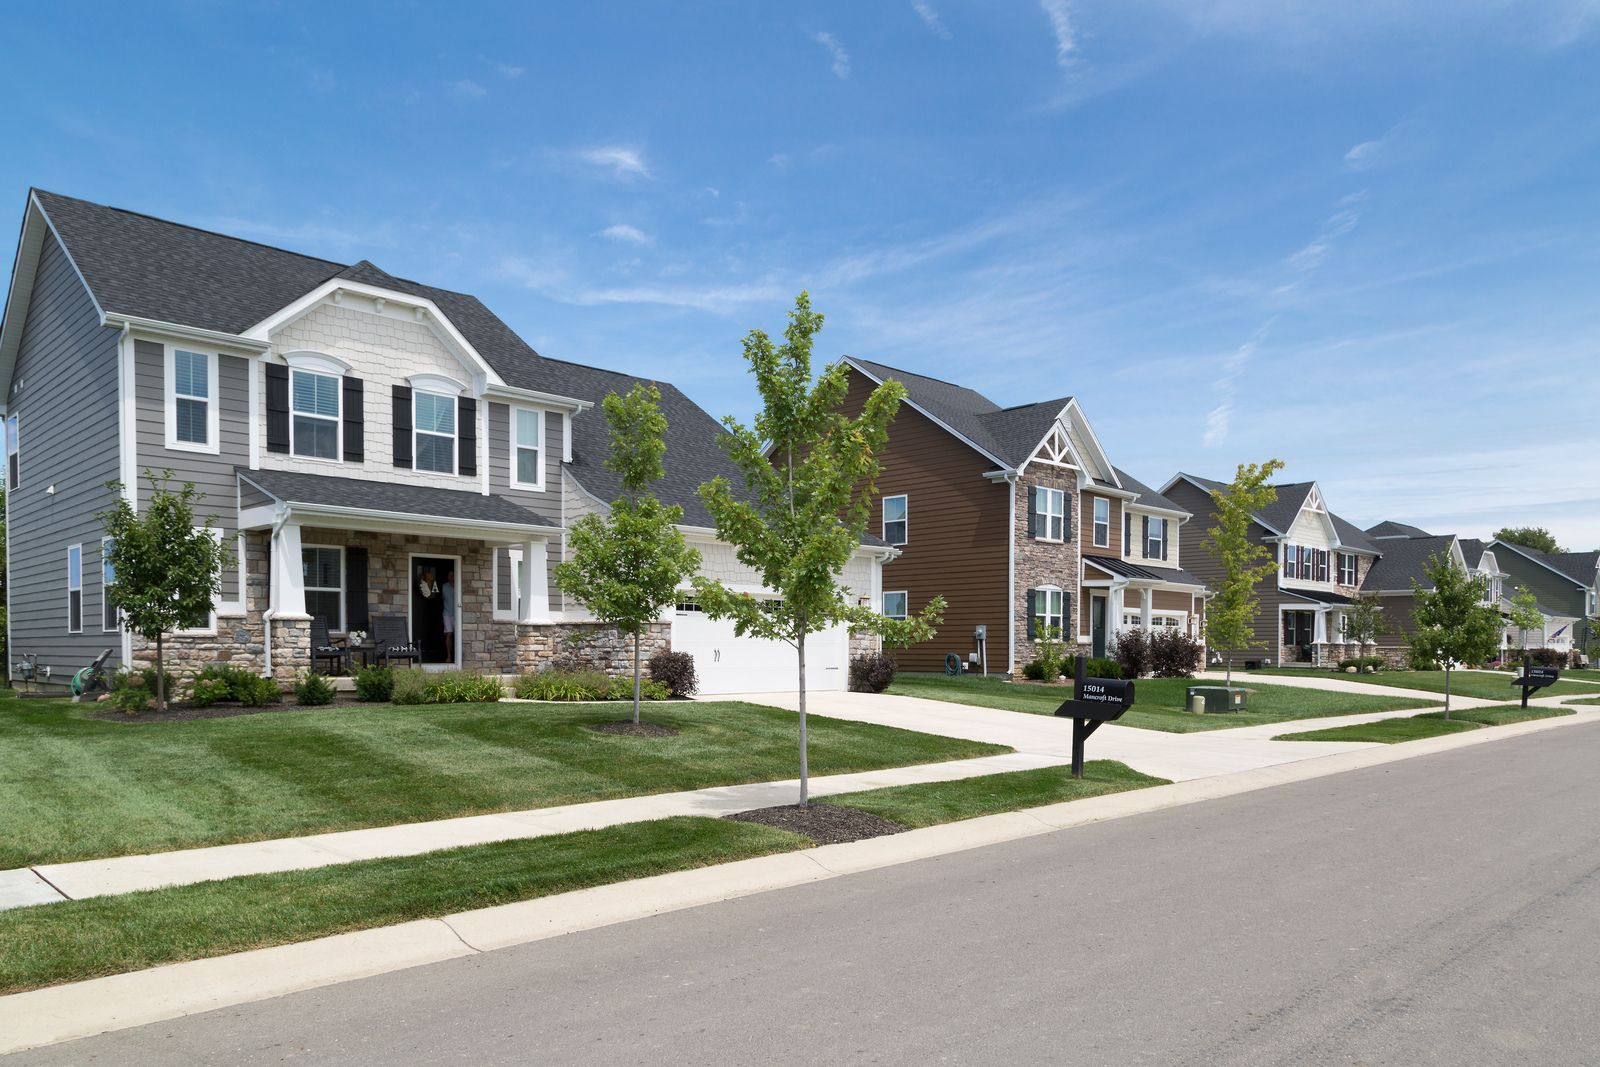 Welcome home to Weatherburn Heights:Located within a few minutes from Mars Schools, Route 228 and Route 8 - your daily commute just became easier.Click here to schedule your appointment to learn more!